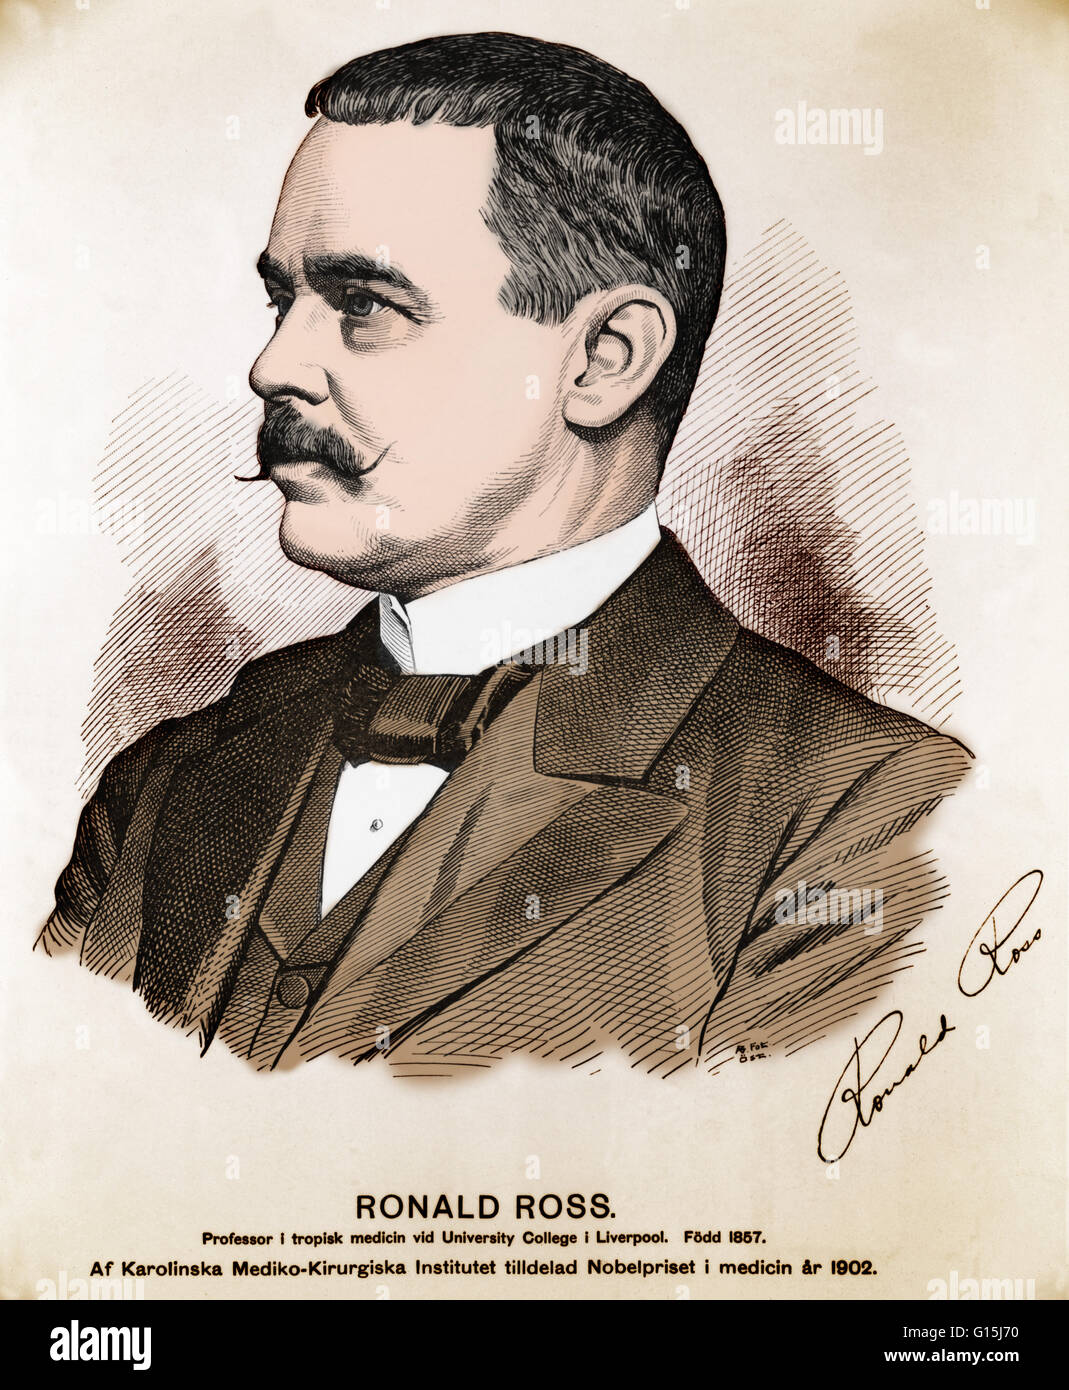 Ronald Ross (May 13, 1857 - September, 16 1932) was a British doctor. He was born in India where his grandfather - Stock Image